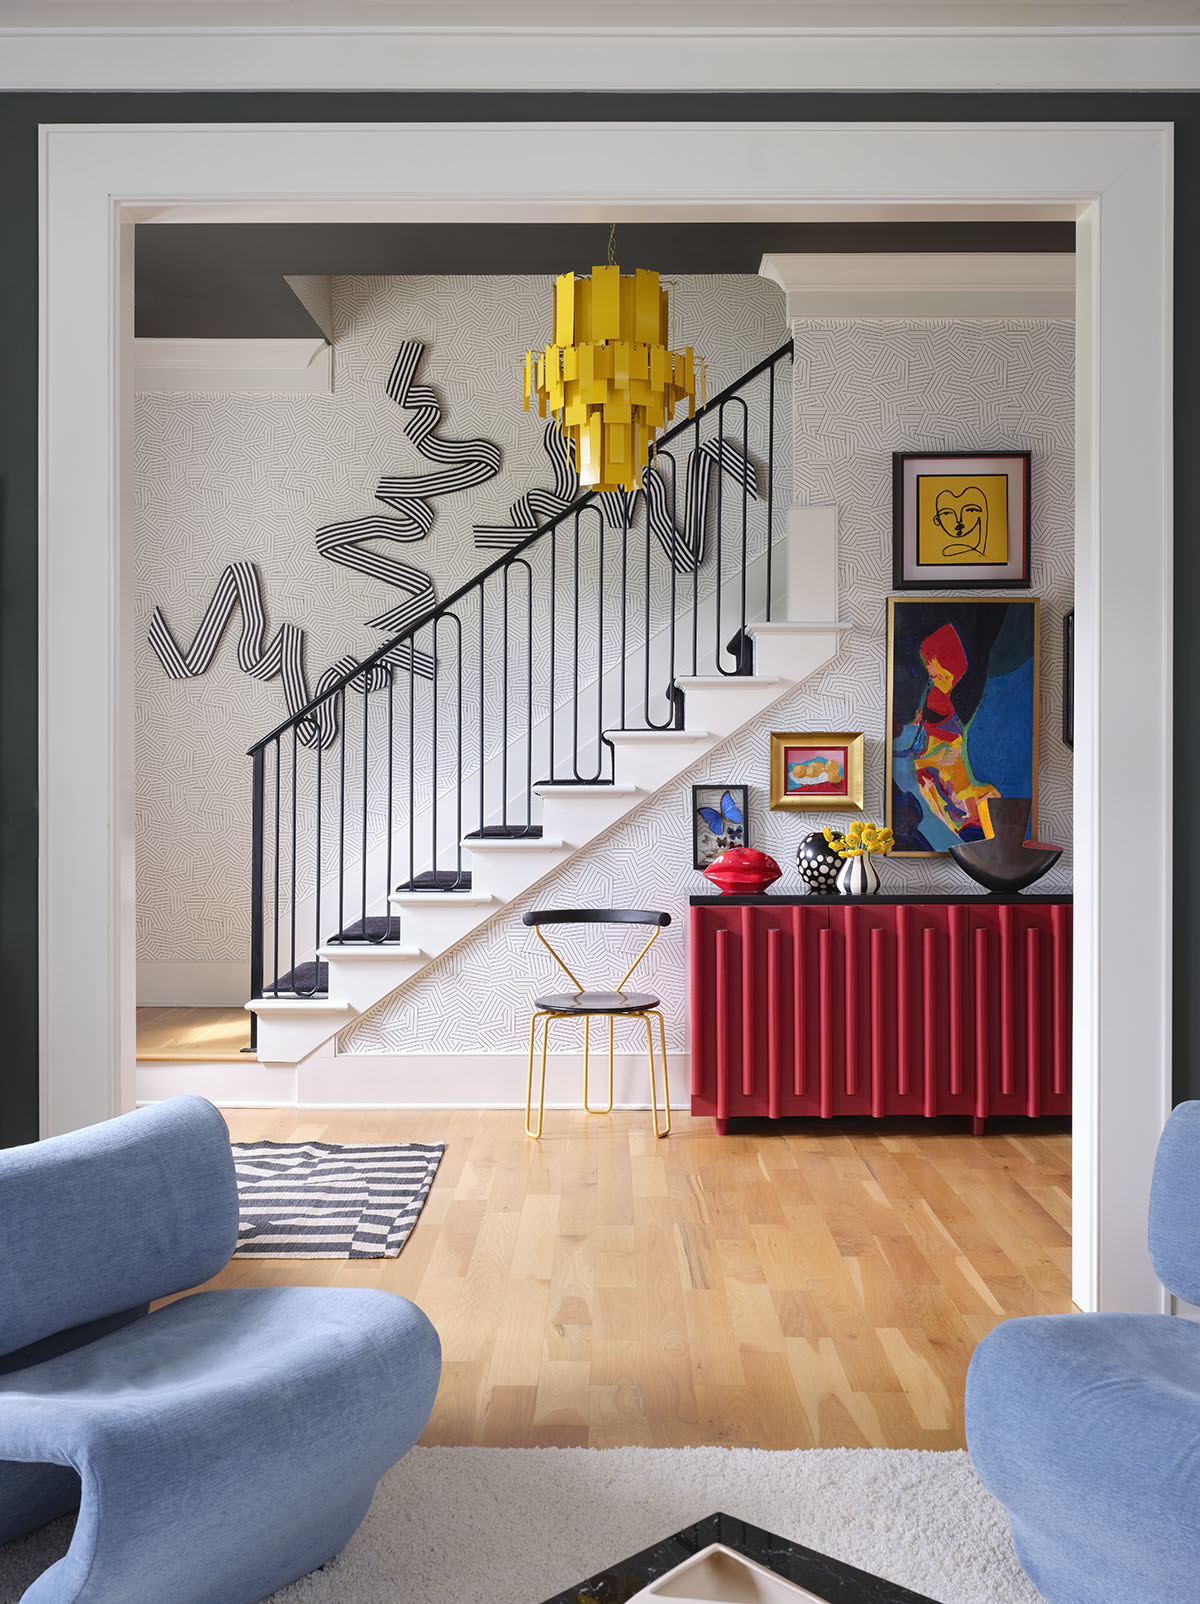 The entryway really showcases the Alice in Wonderland effect with its magical fusion of large-scale art, graphic patterns, and playful color combinations. Custom Chris Lund Cabinet | Custom Yellow Chandelier | Angela Chrusciaki Blehm wall art | Vintage Accent Chair | Vintage Vase | Missoni for Stark Runner |